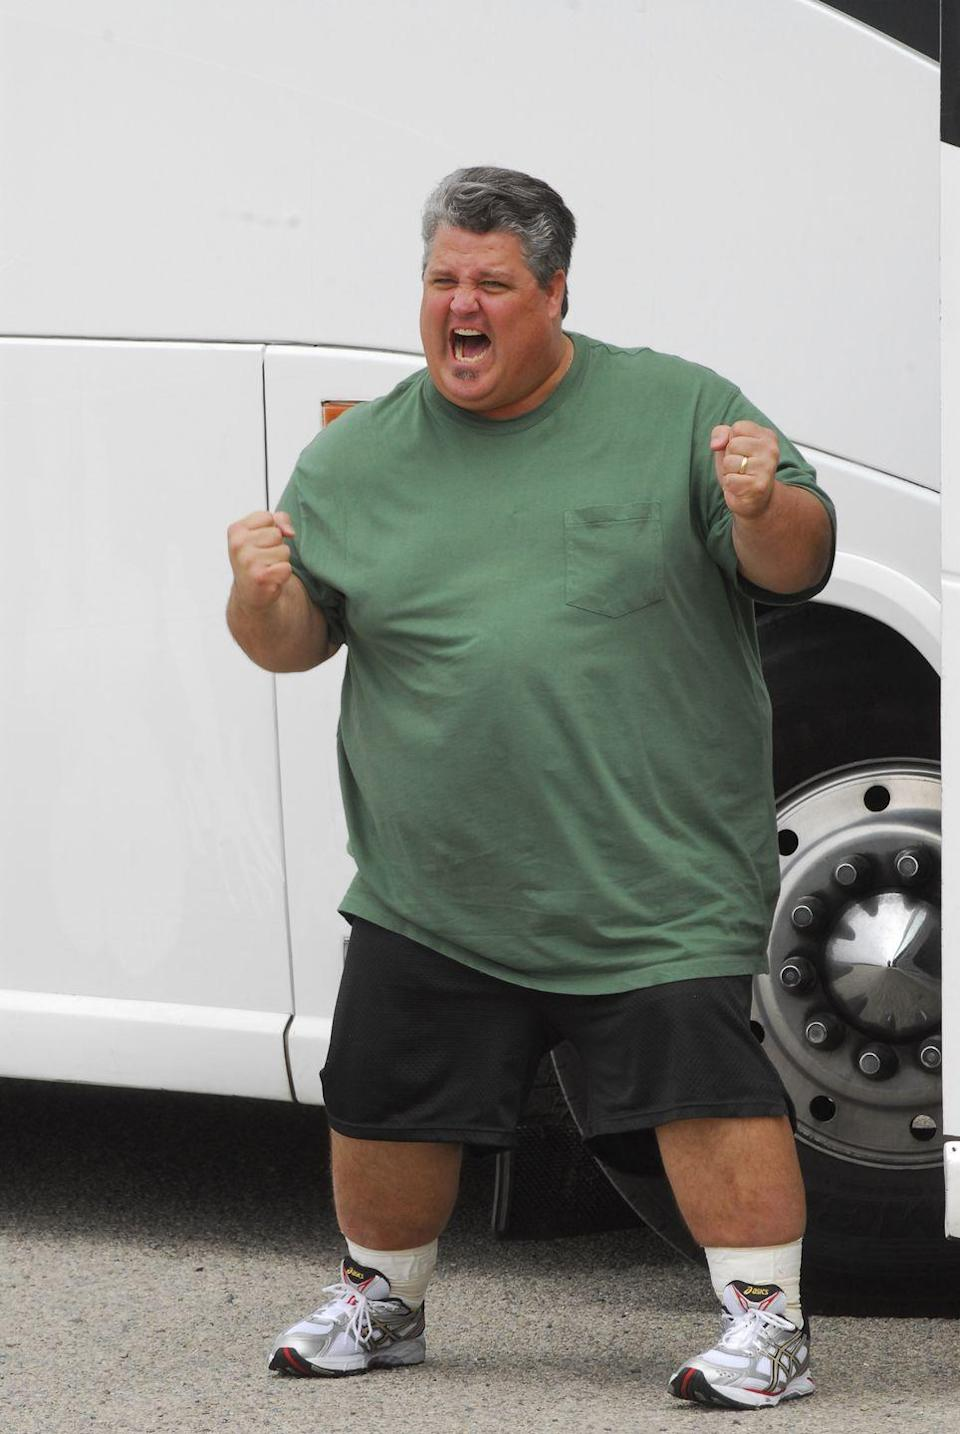 <p>Danny weighed 430 pounds when he started season 8. He said on the show that he wanted to lose the weight so he could be healthy for his wife and children.</p>